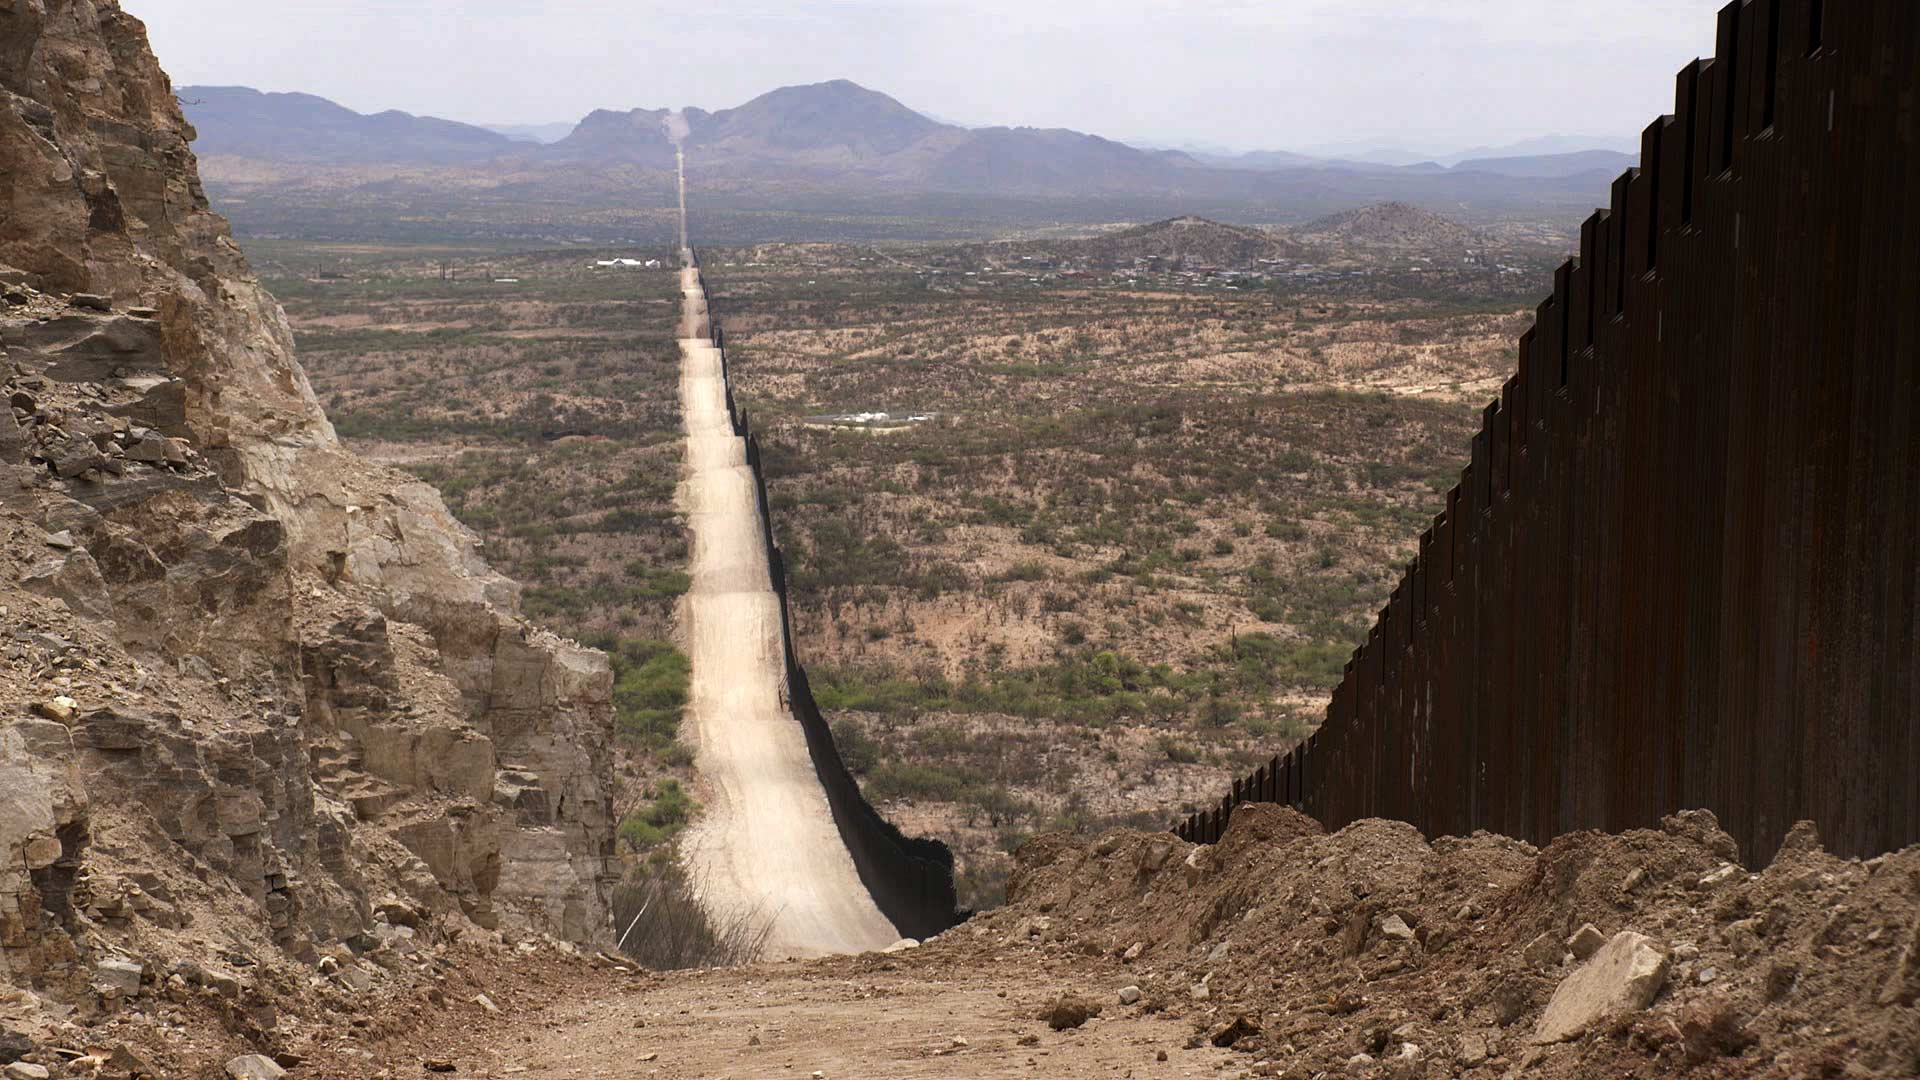 A view of newly-constructed border fencing in Sasabe. June 2021.